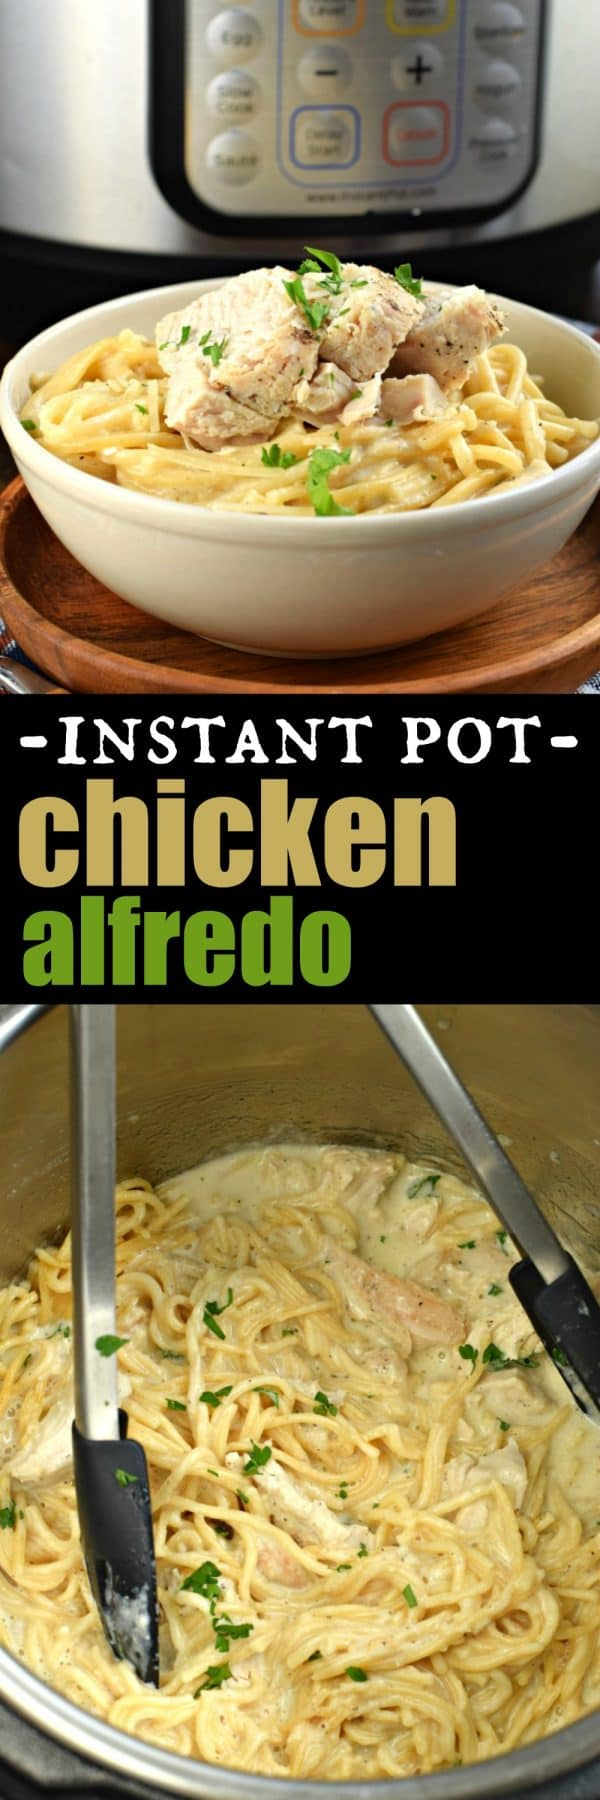 The BEST Instant Pot Chicken Alfredo recipe with a skinny version too! #pressurecooker #dinner #30minutemeals